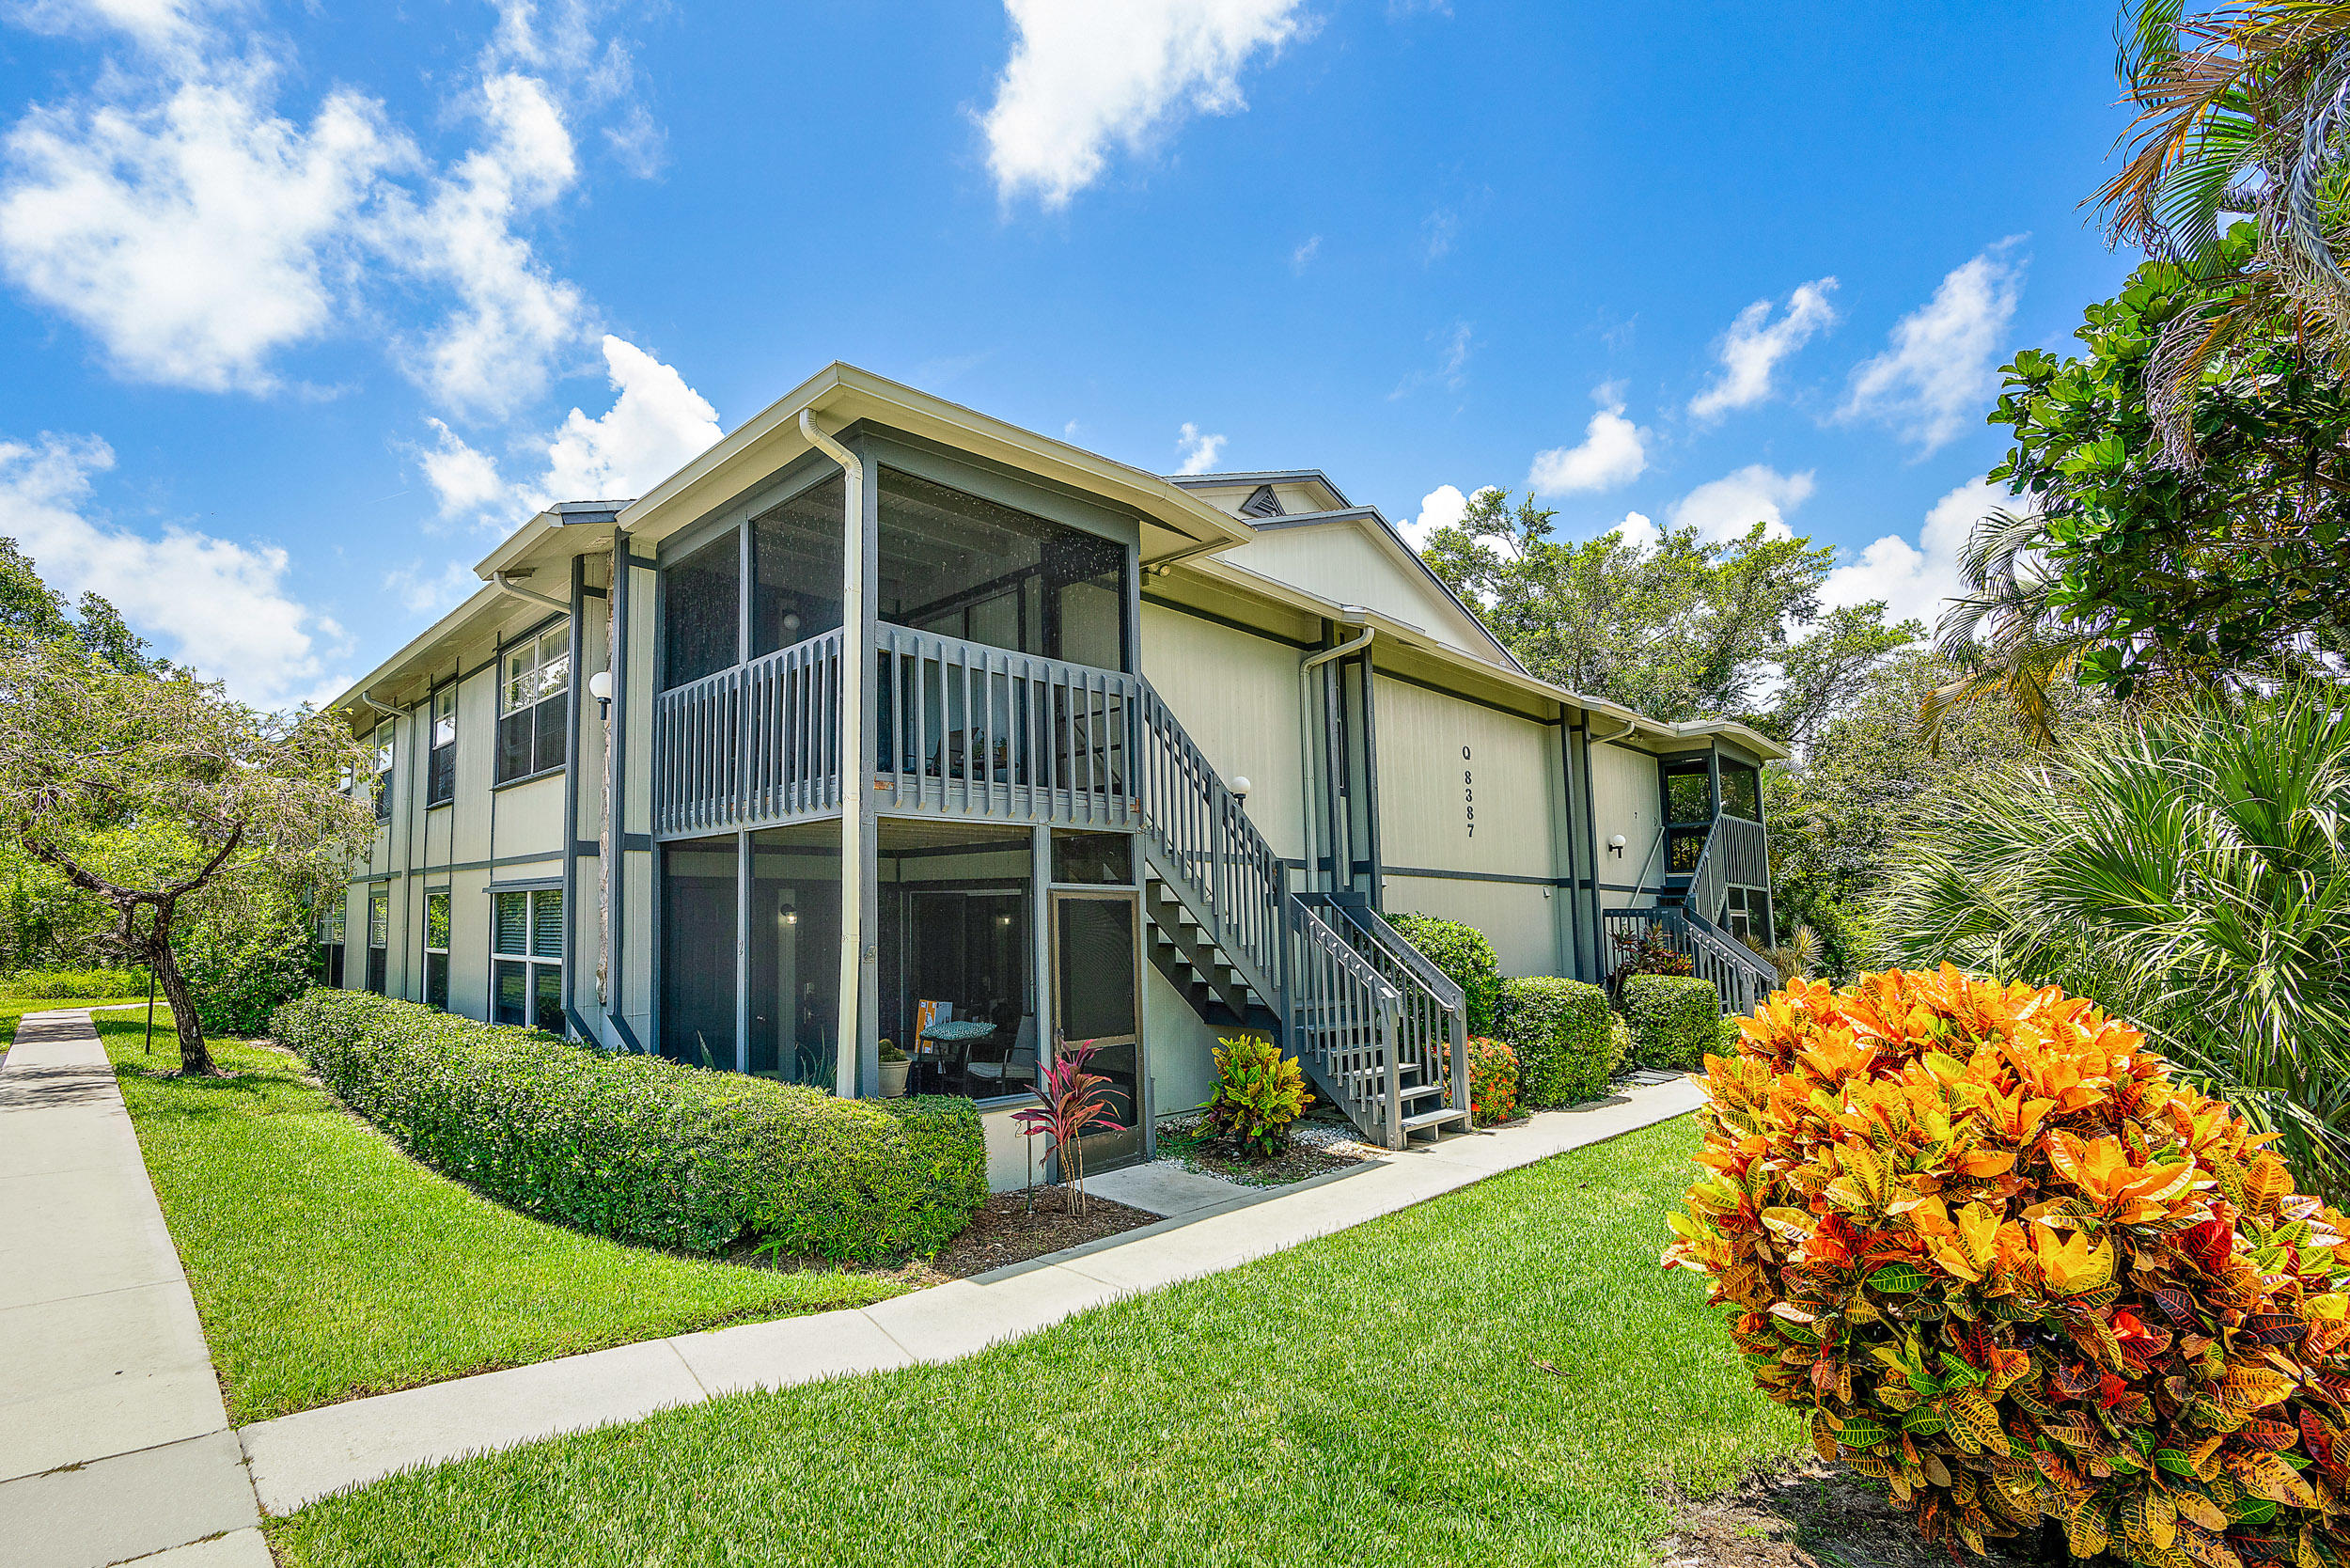 Home for sale in Pinecroft Hobe Sound Florida